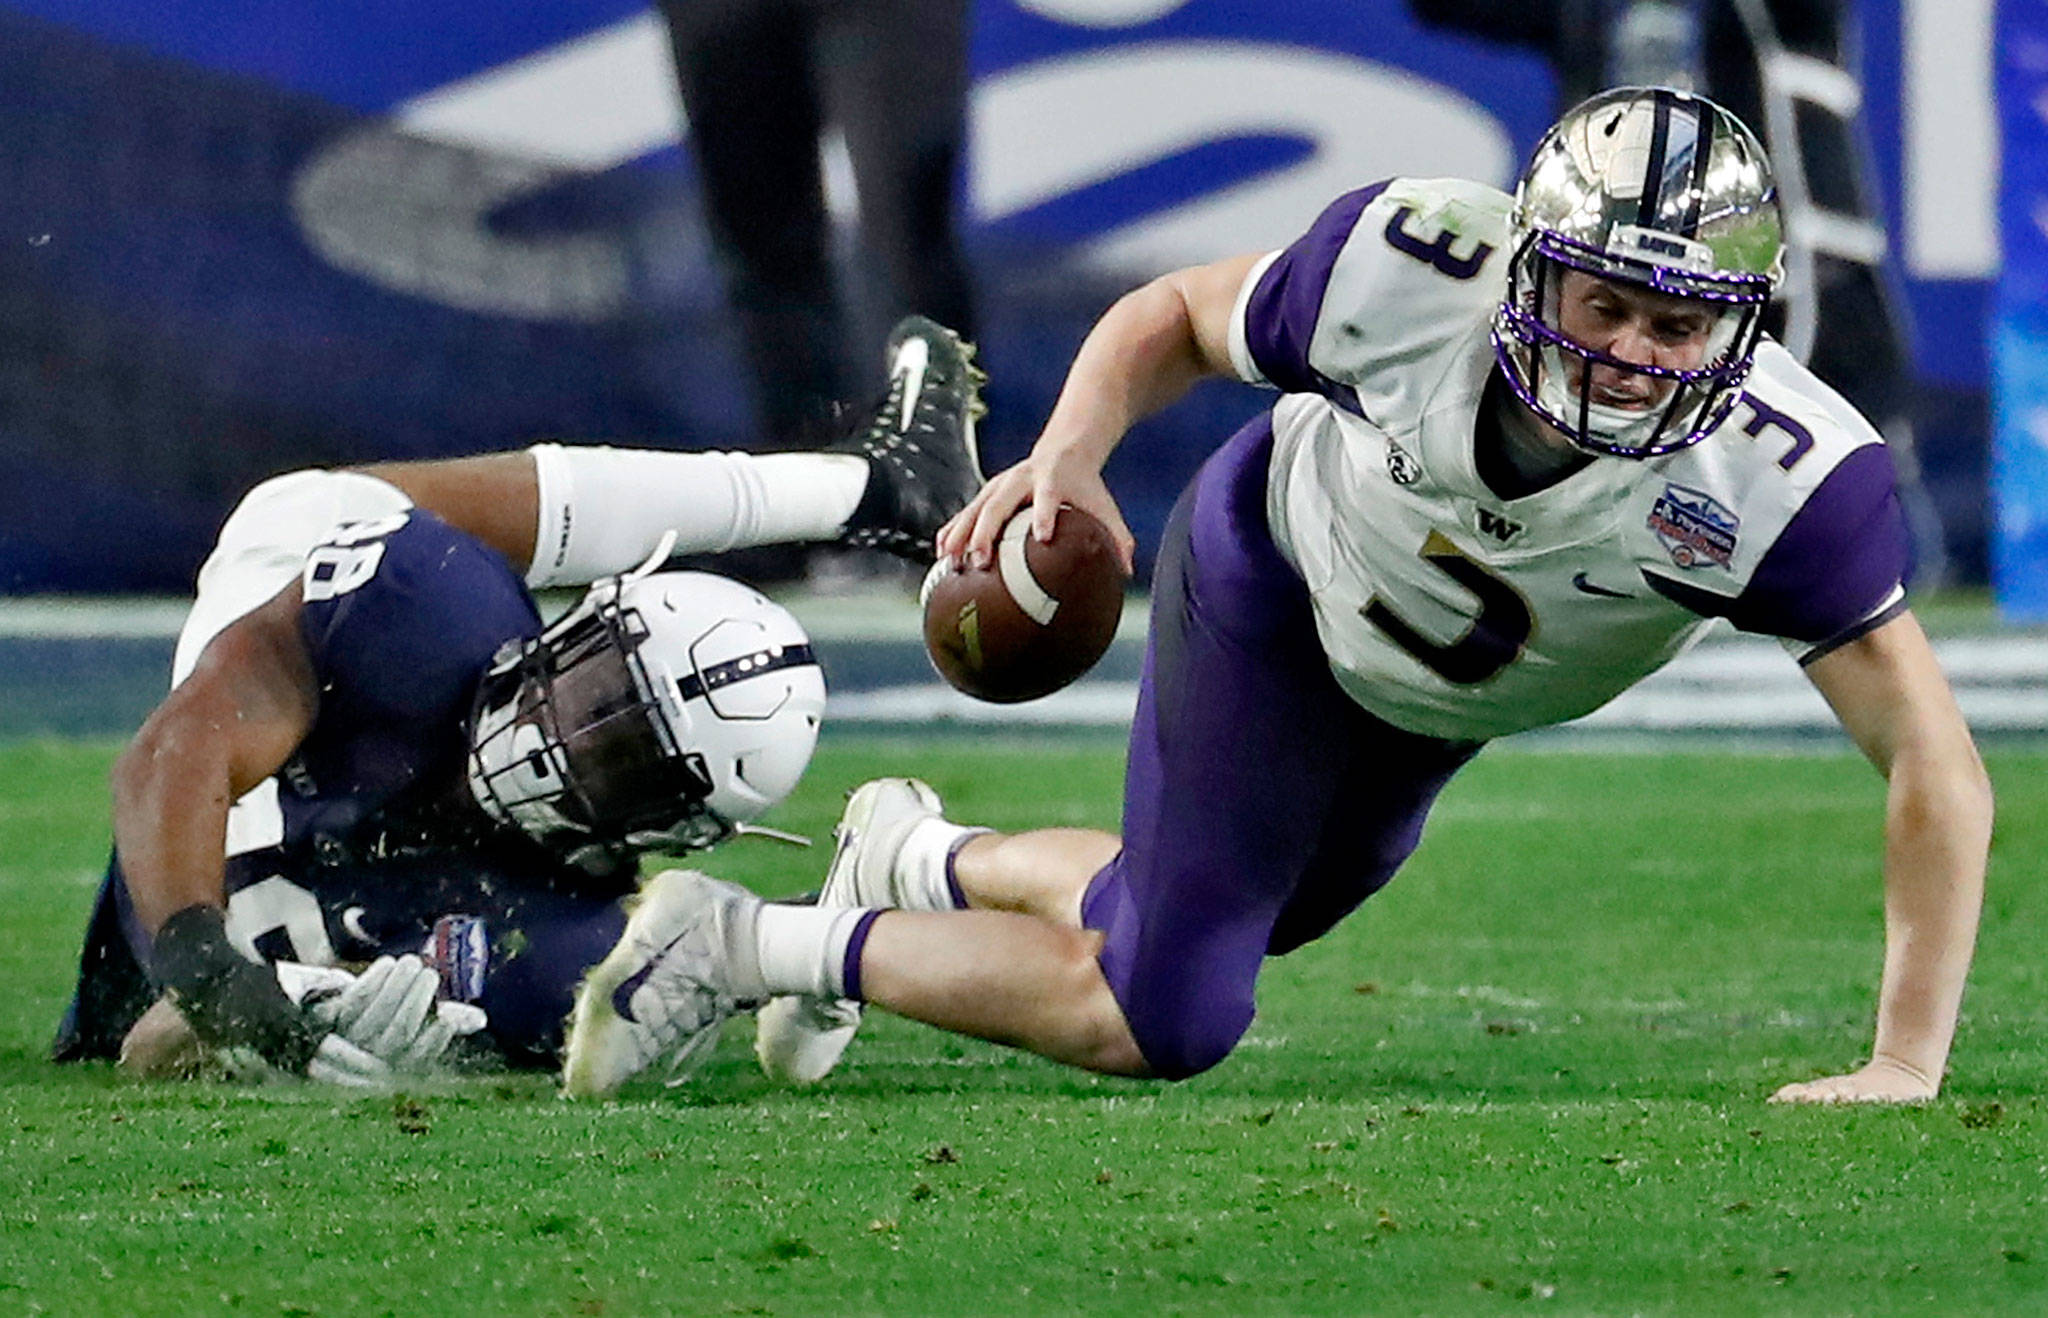 Washington quarterback Jake Browning (3) is tripped up by Penn State defensive end Shareef Miller (48) during the second half of the Fiesta Bowl on Dec. 30, 2017, in Glendale, Ariz. (AP Photo/Rick Scuteri)